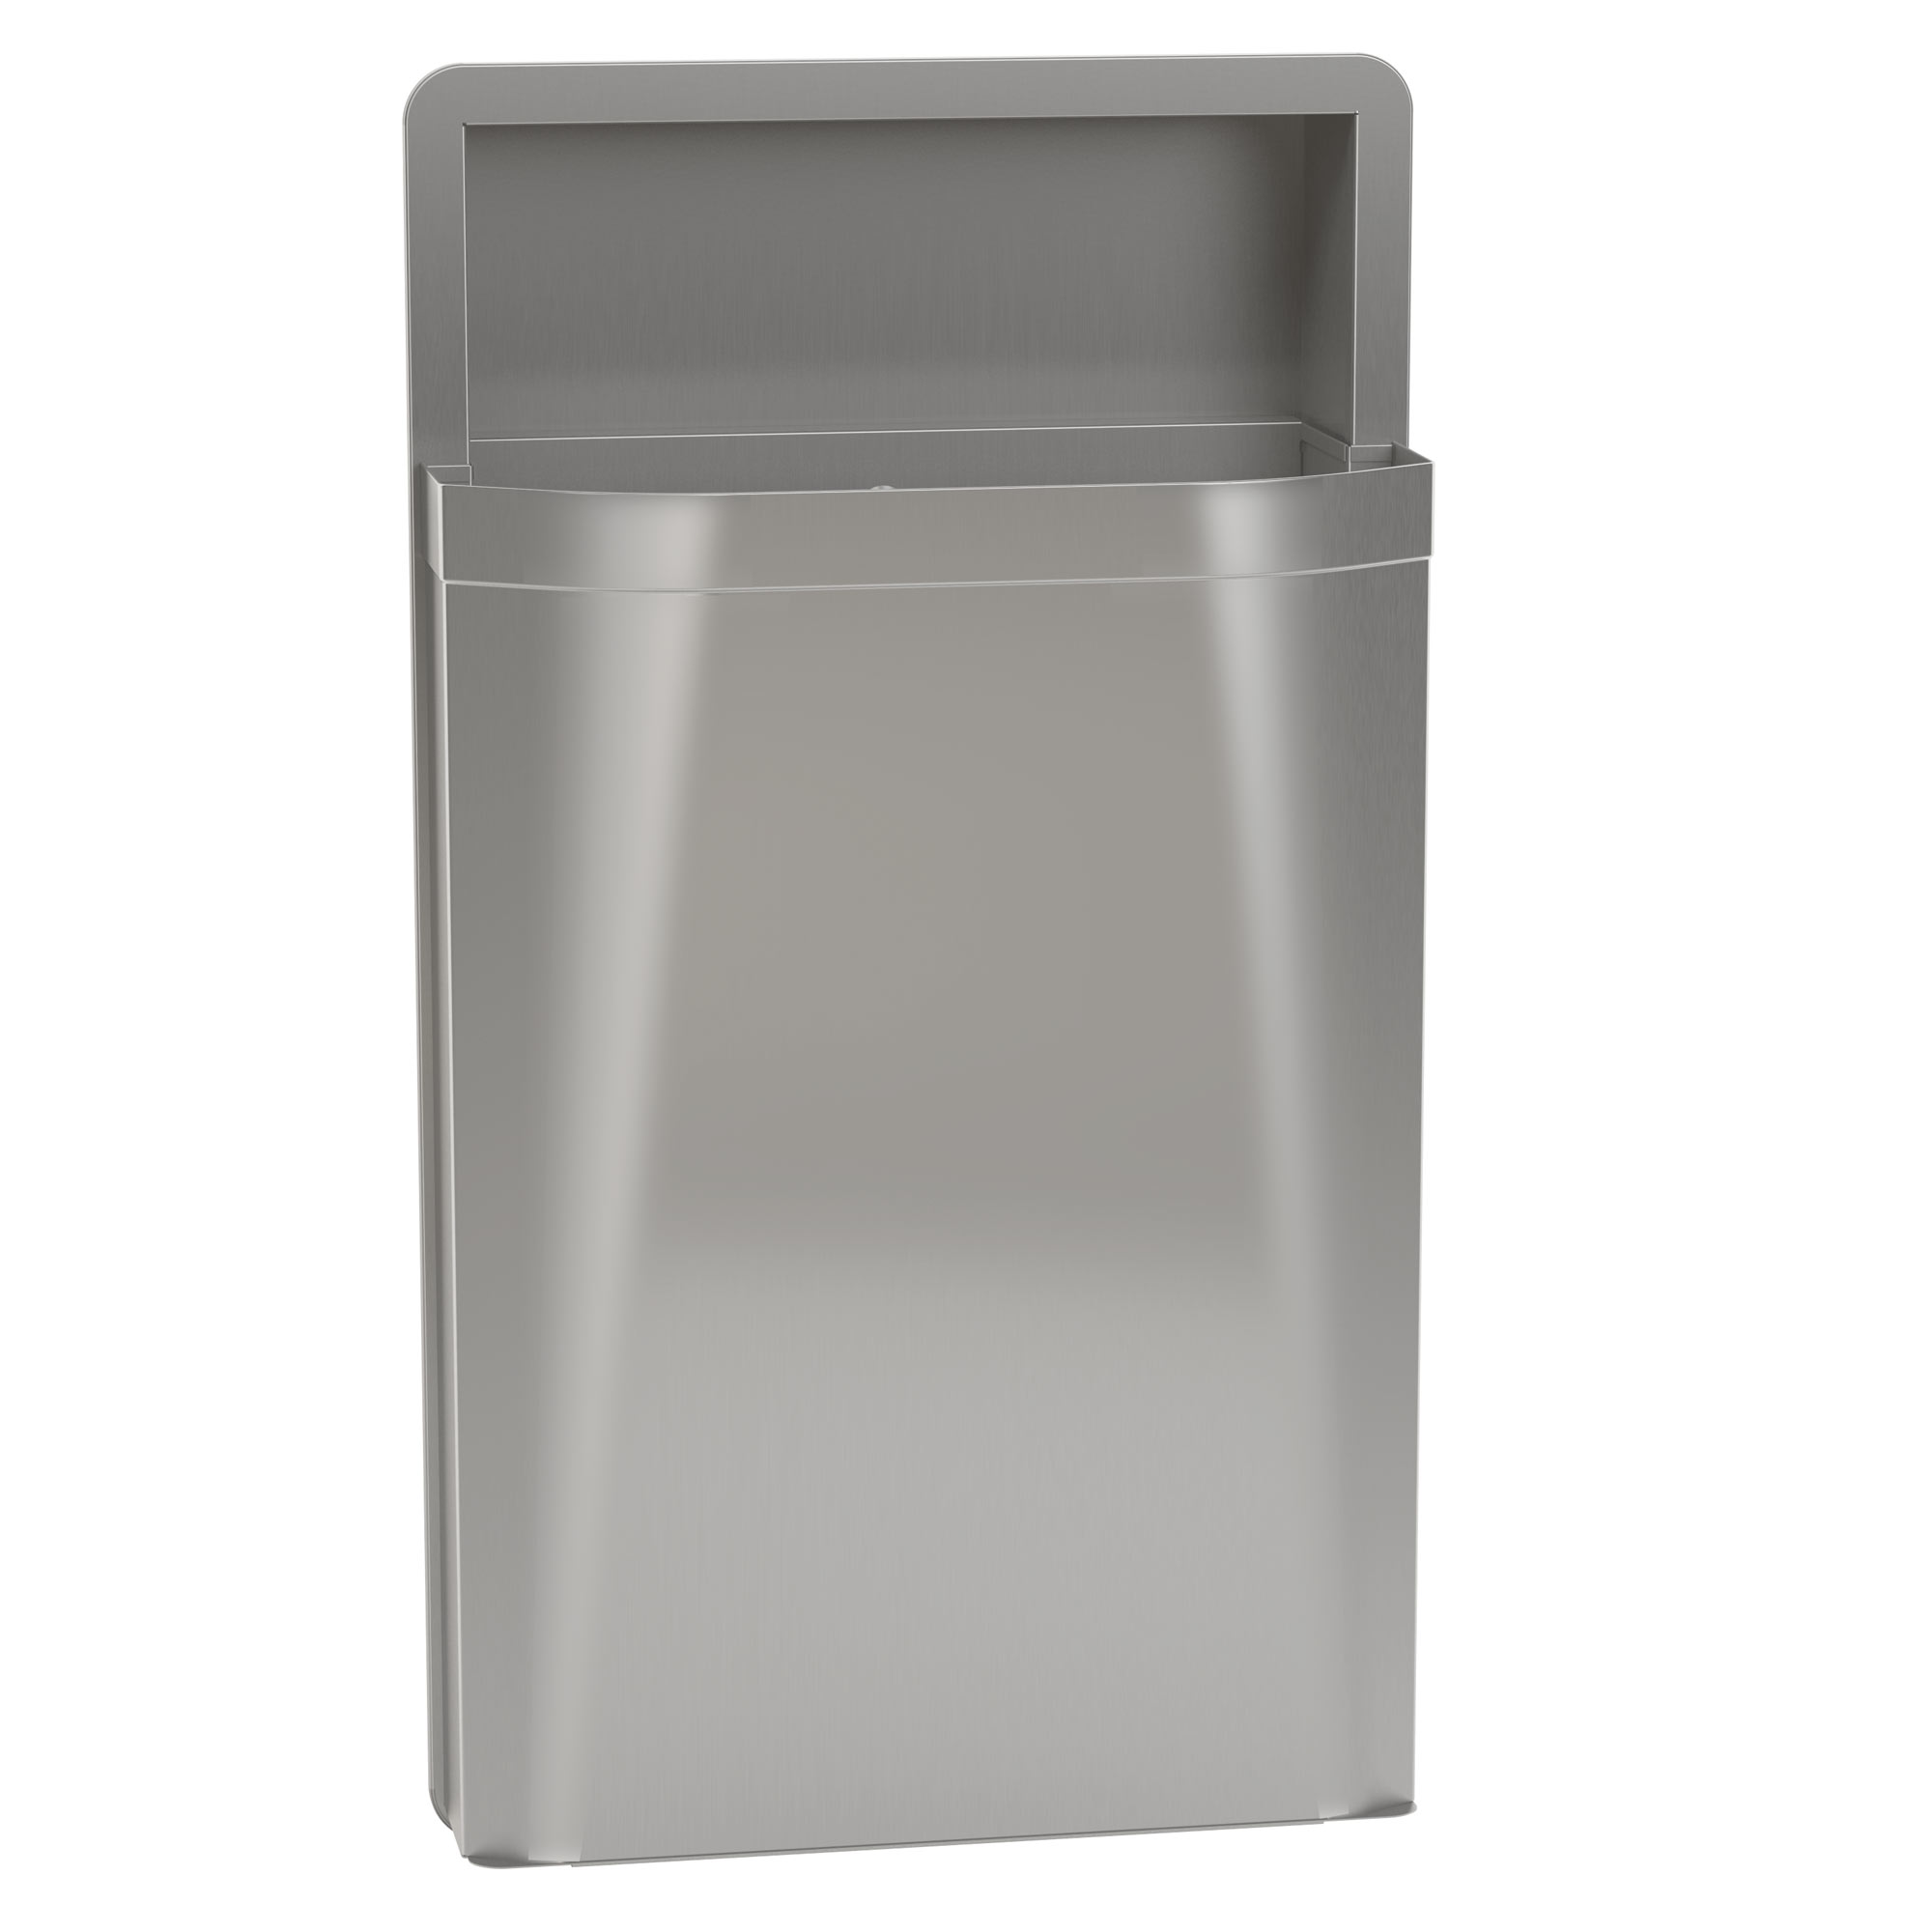 Bradley 3A05 Diplomat Series Recessed Waste Receptacle